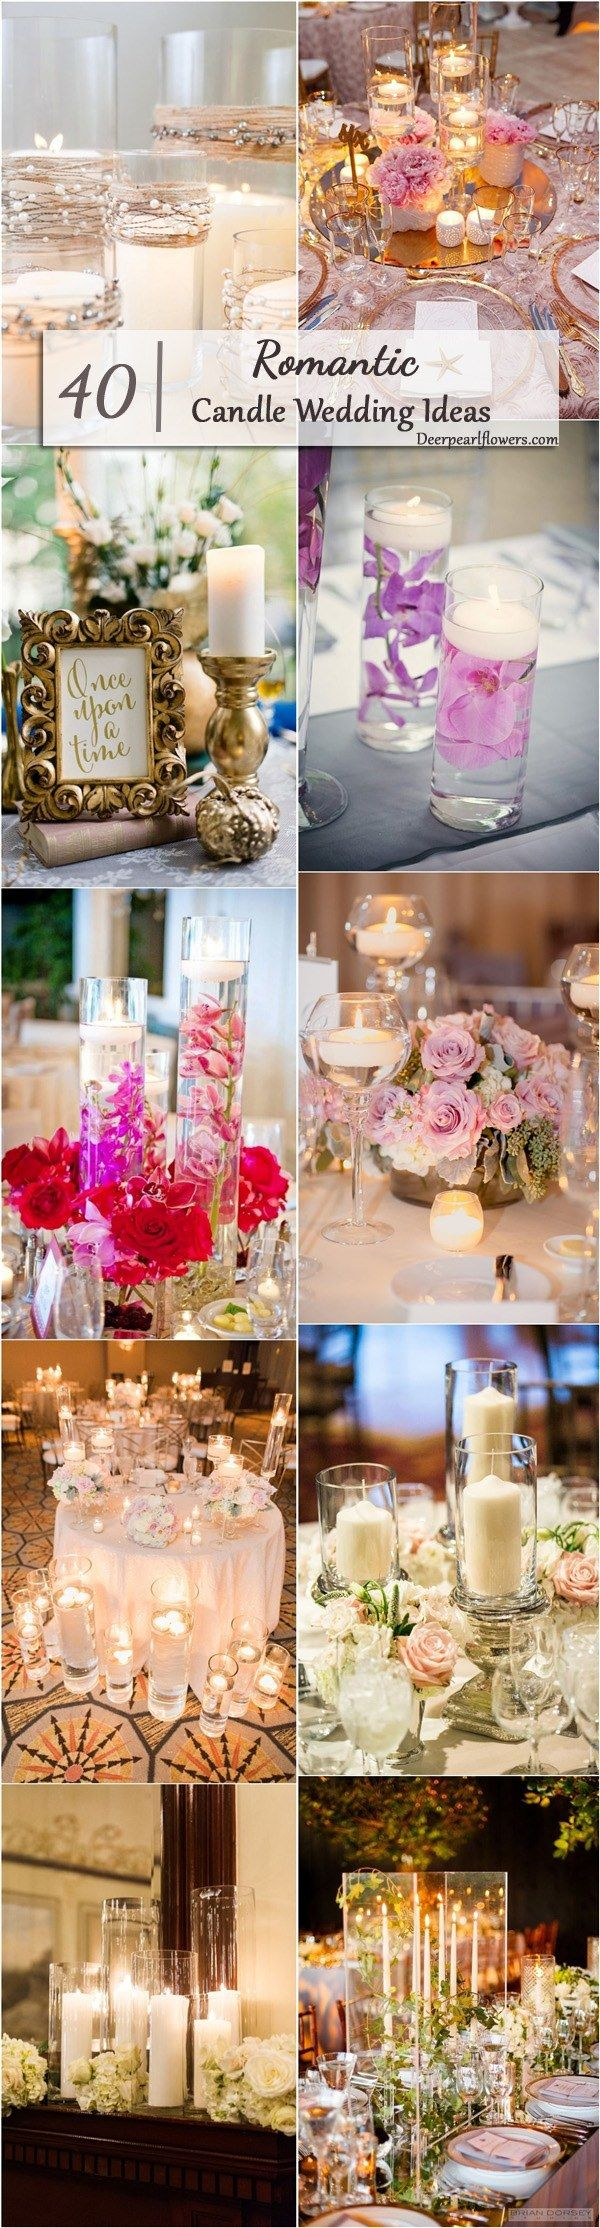 Candles Wedding Reception Centerpieces / http://www.deerpearlflowers.com/wedding-ideas-using-candles/2/